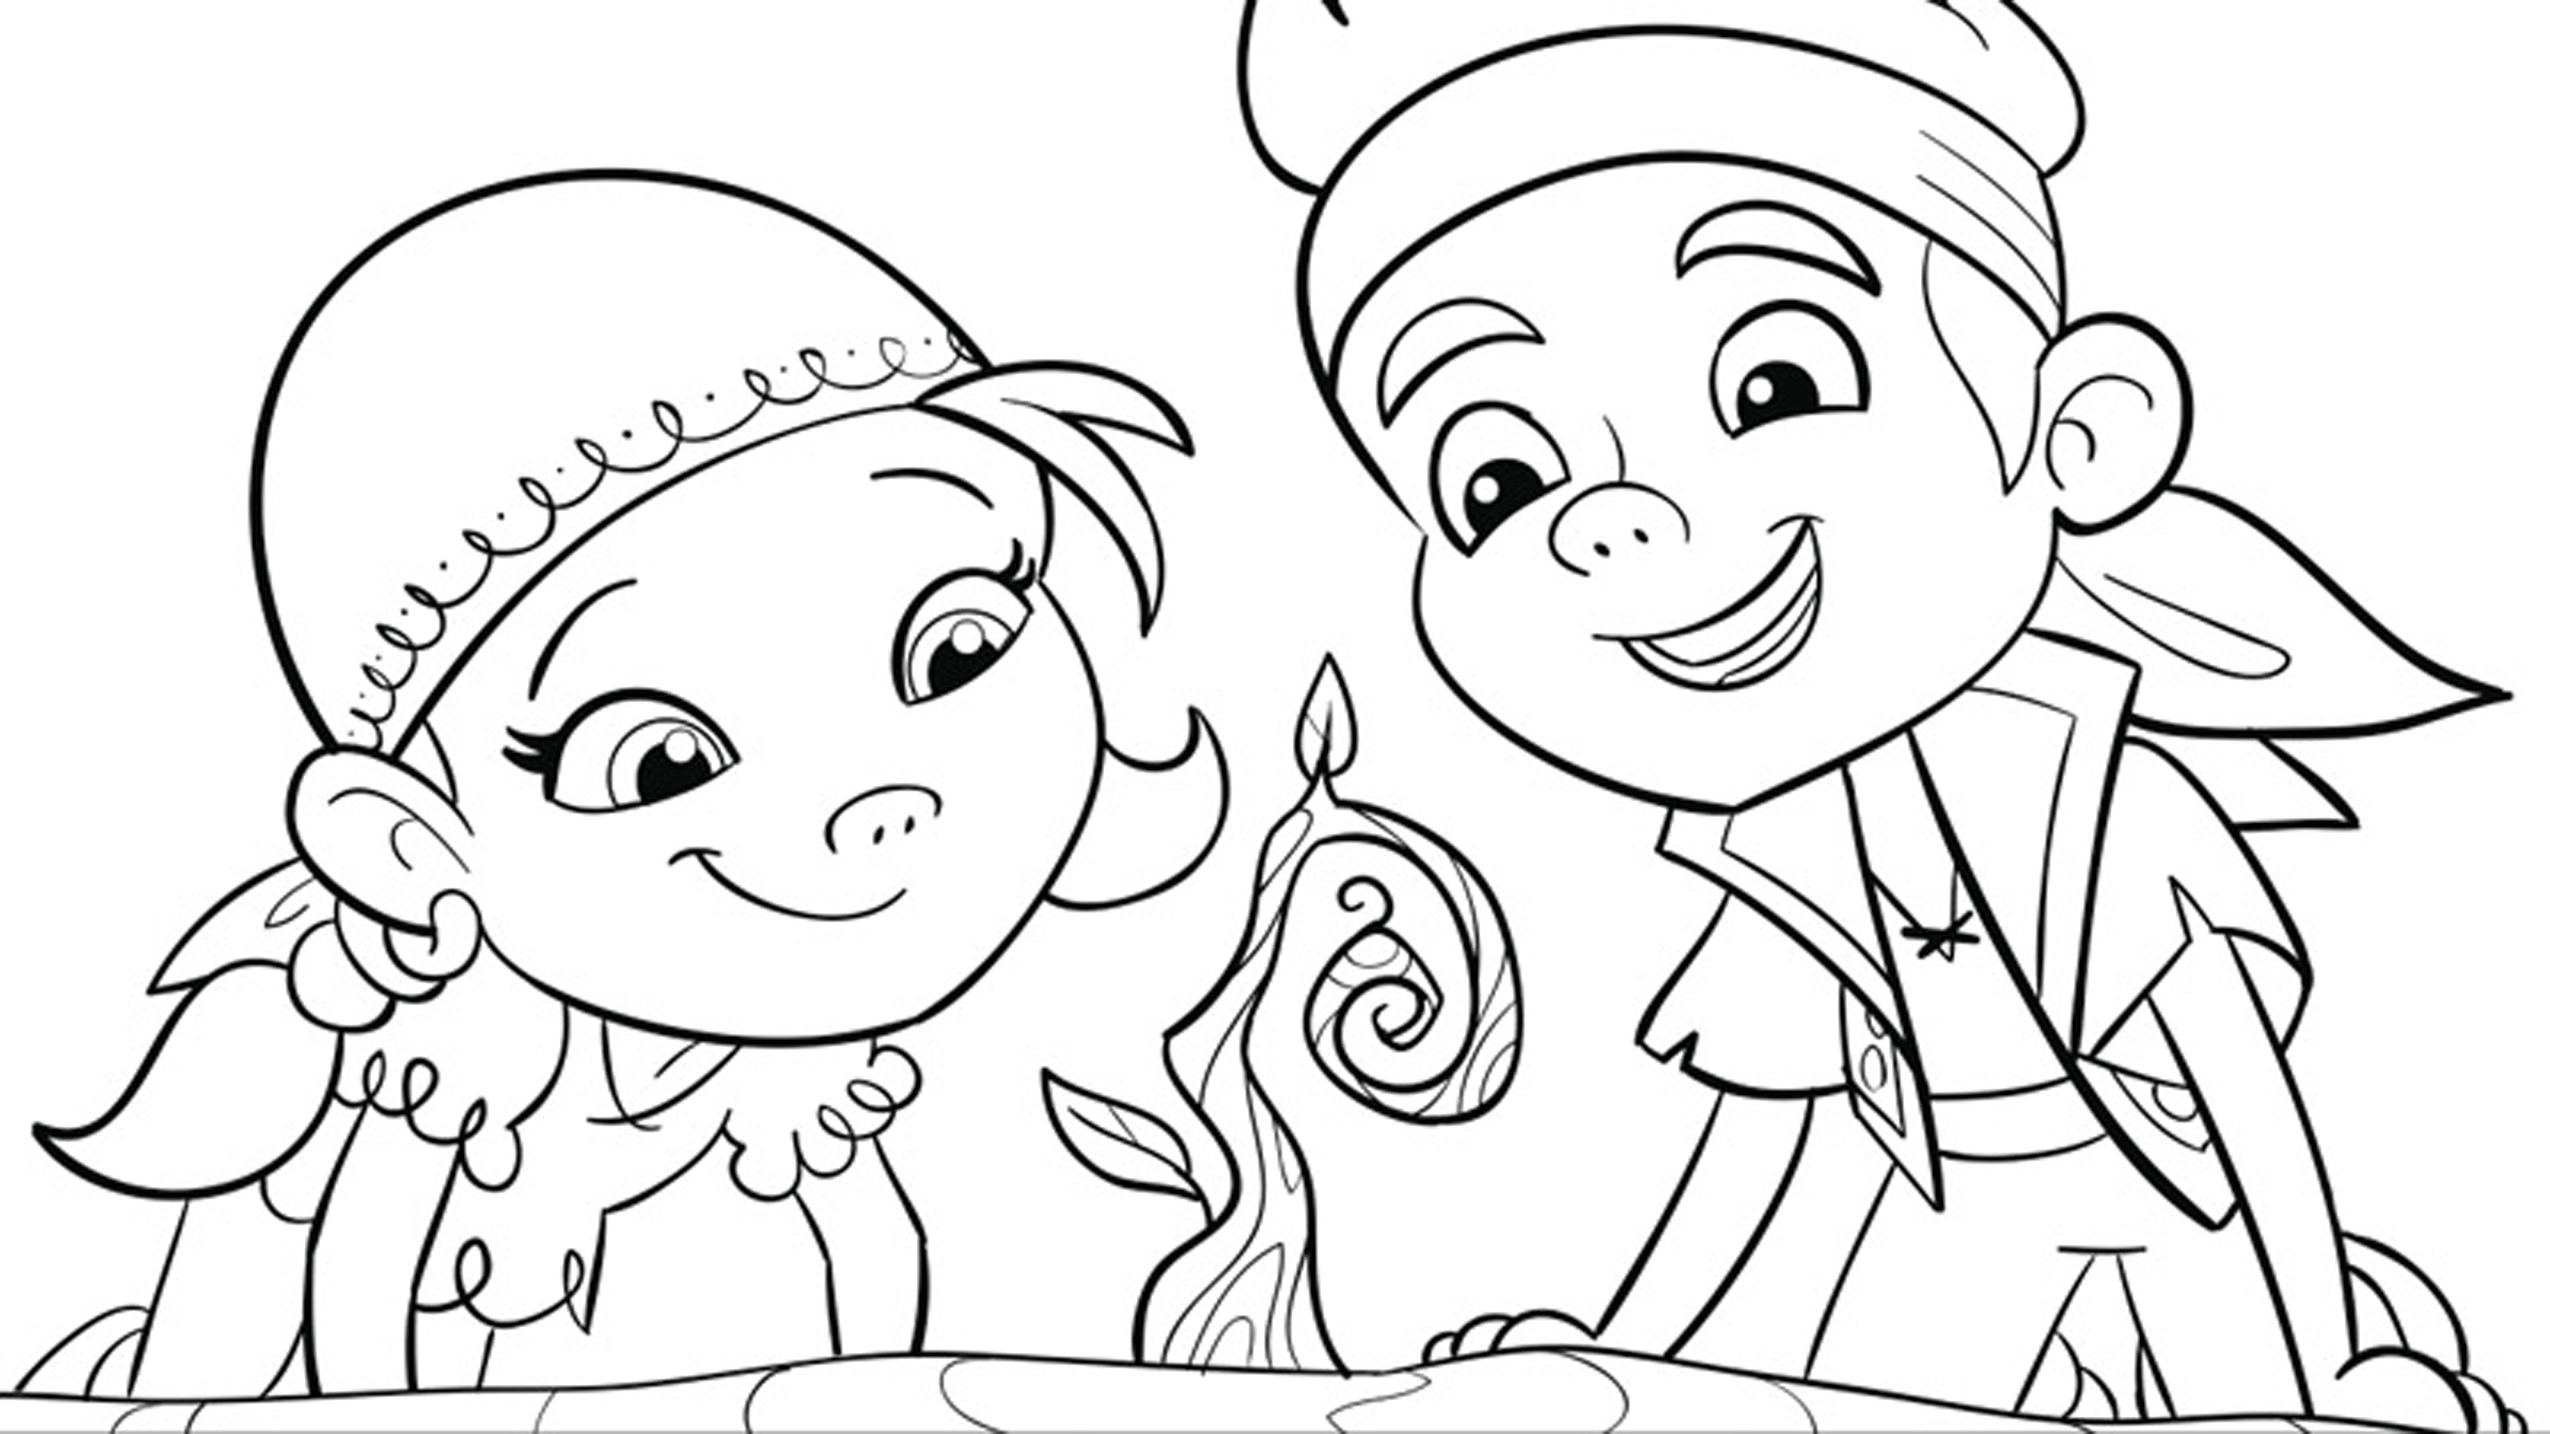 Disney Coloring Pages For Kids To Print Out At Getdrawings